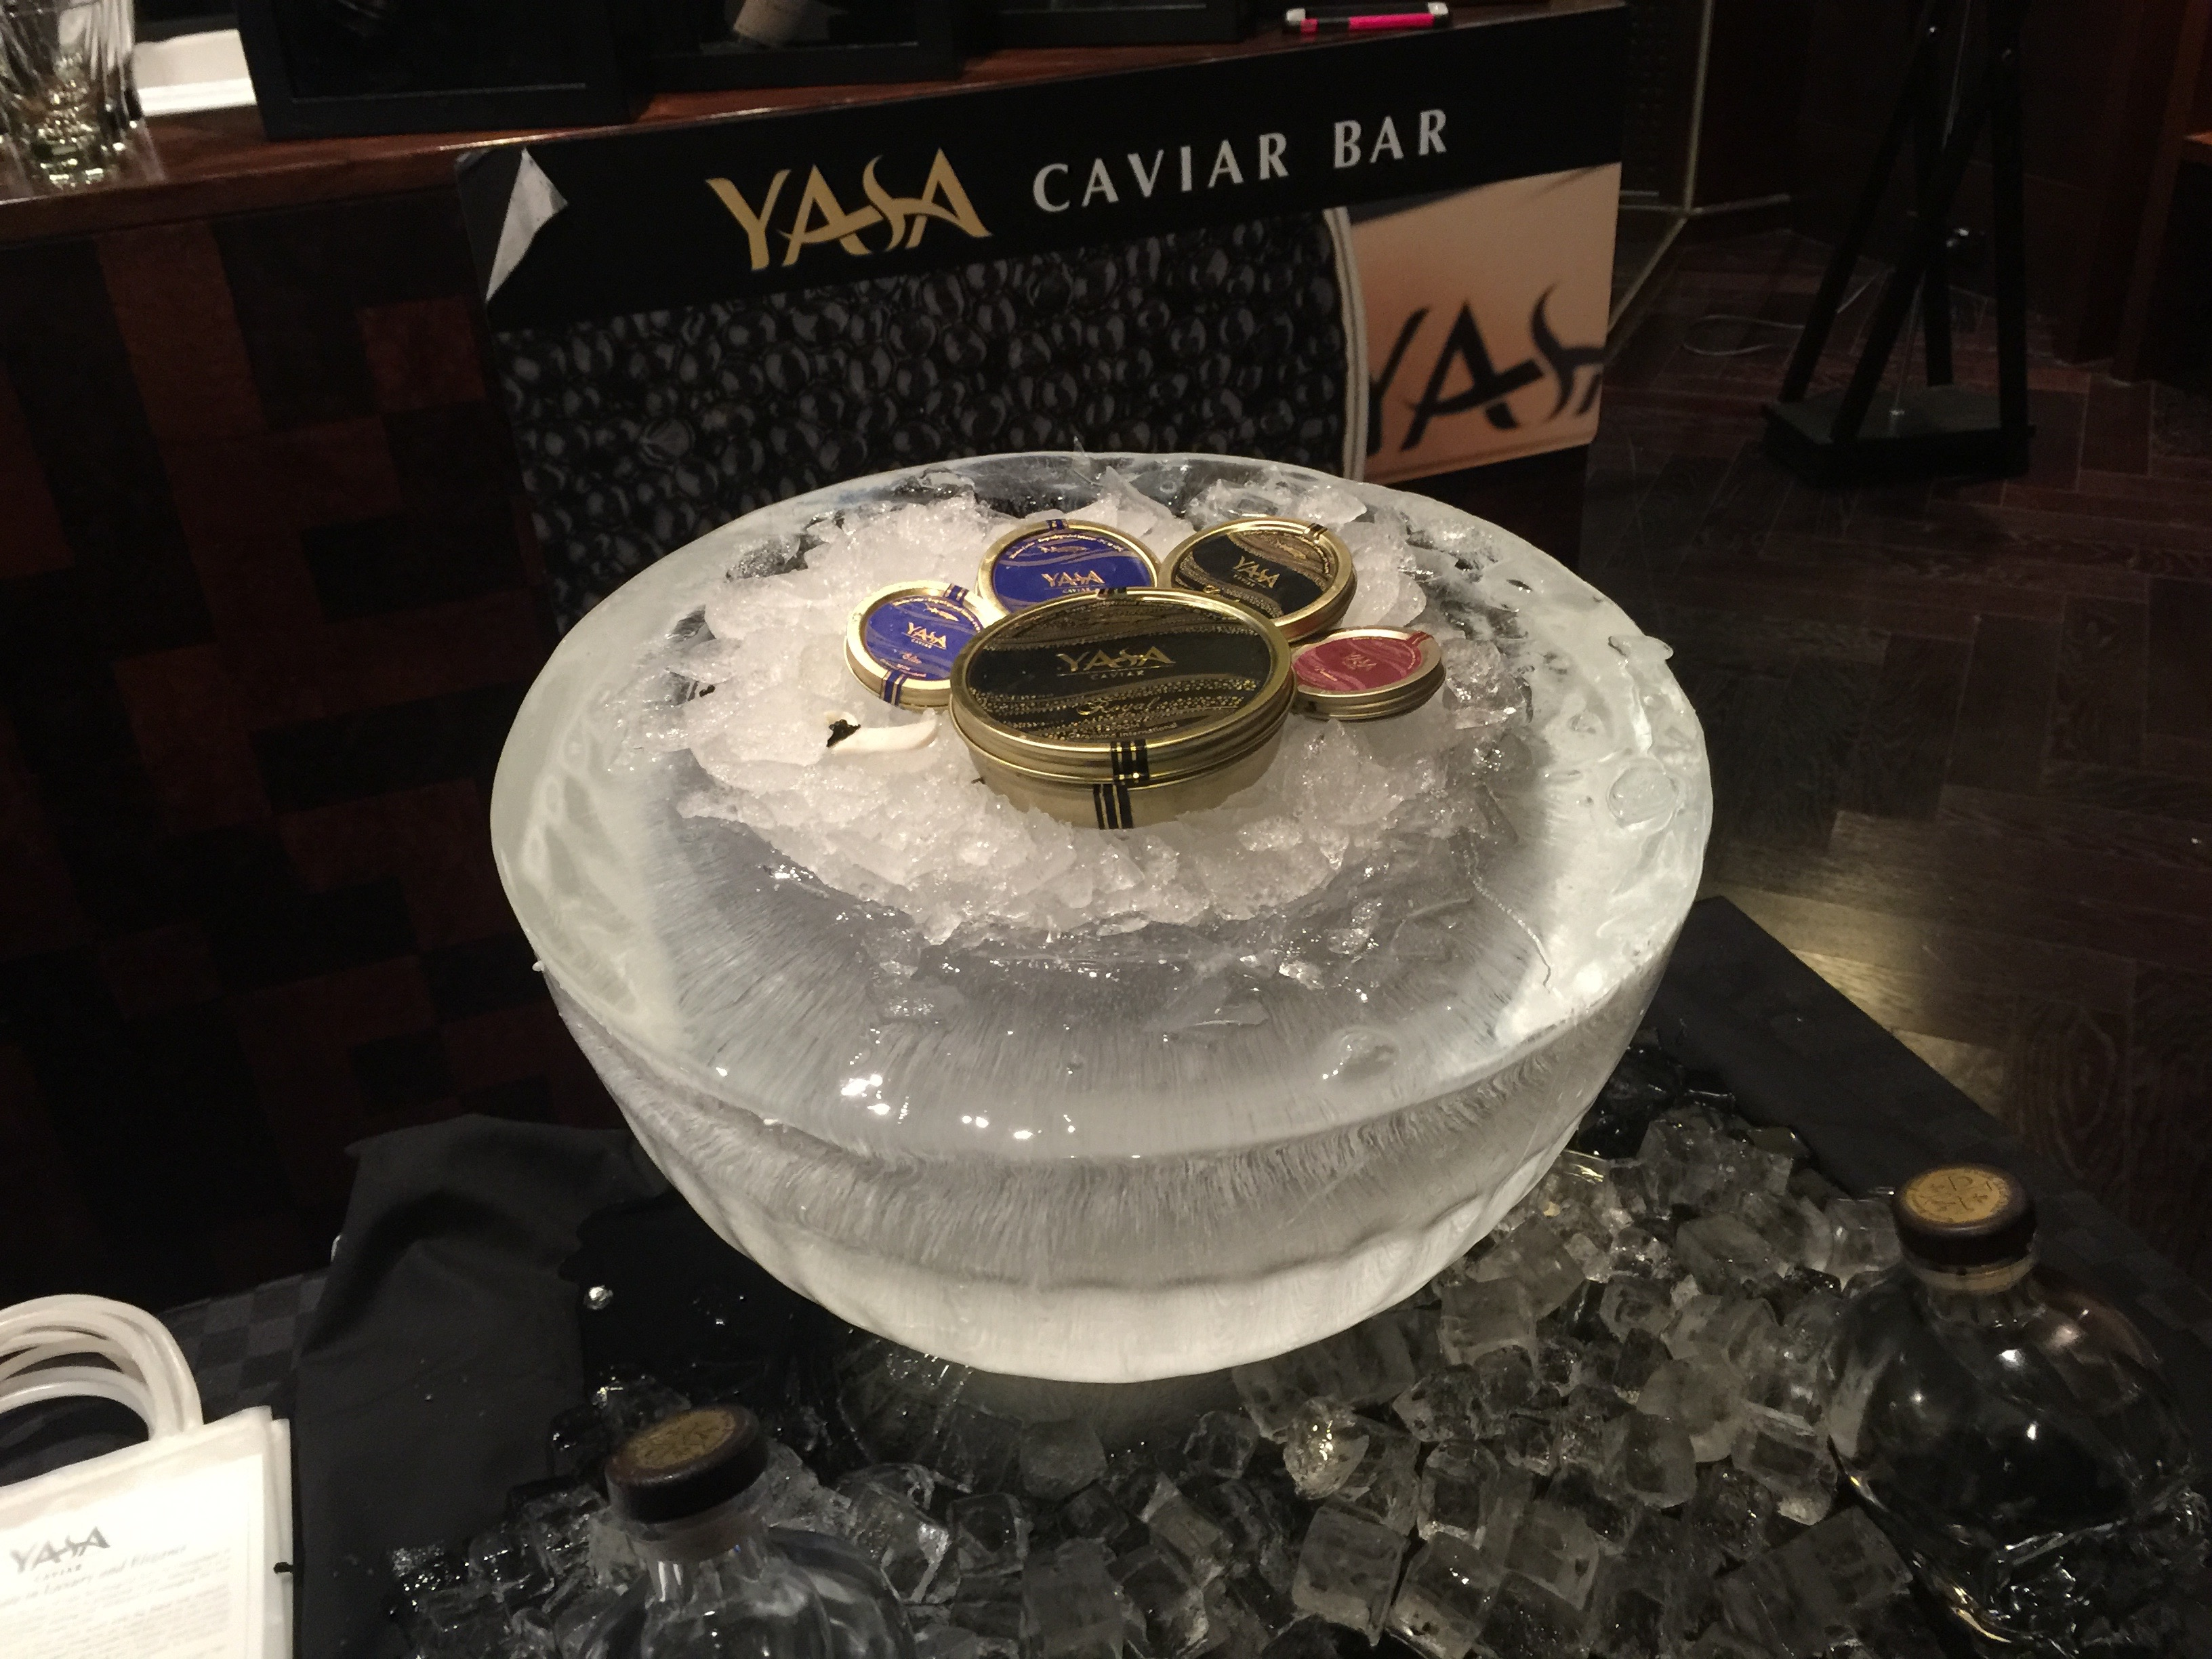 They had Caviar. I had Caviar.